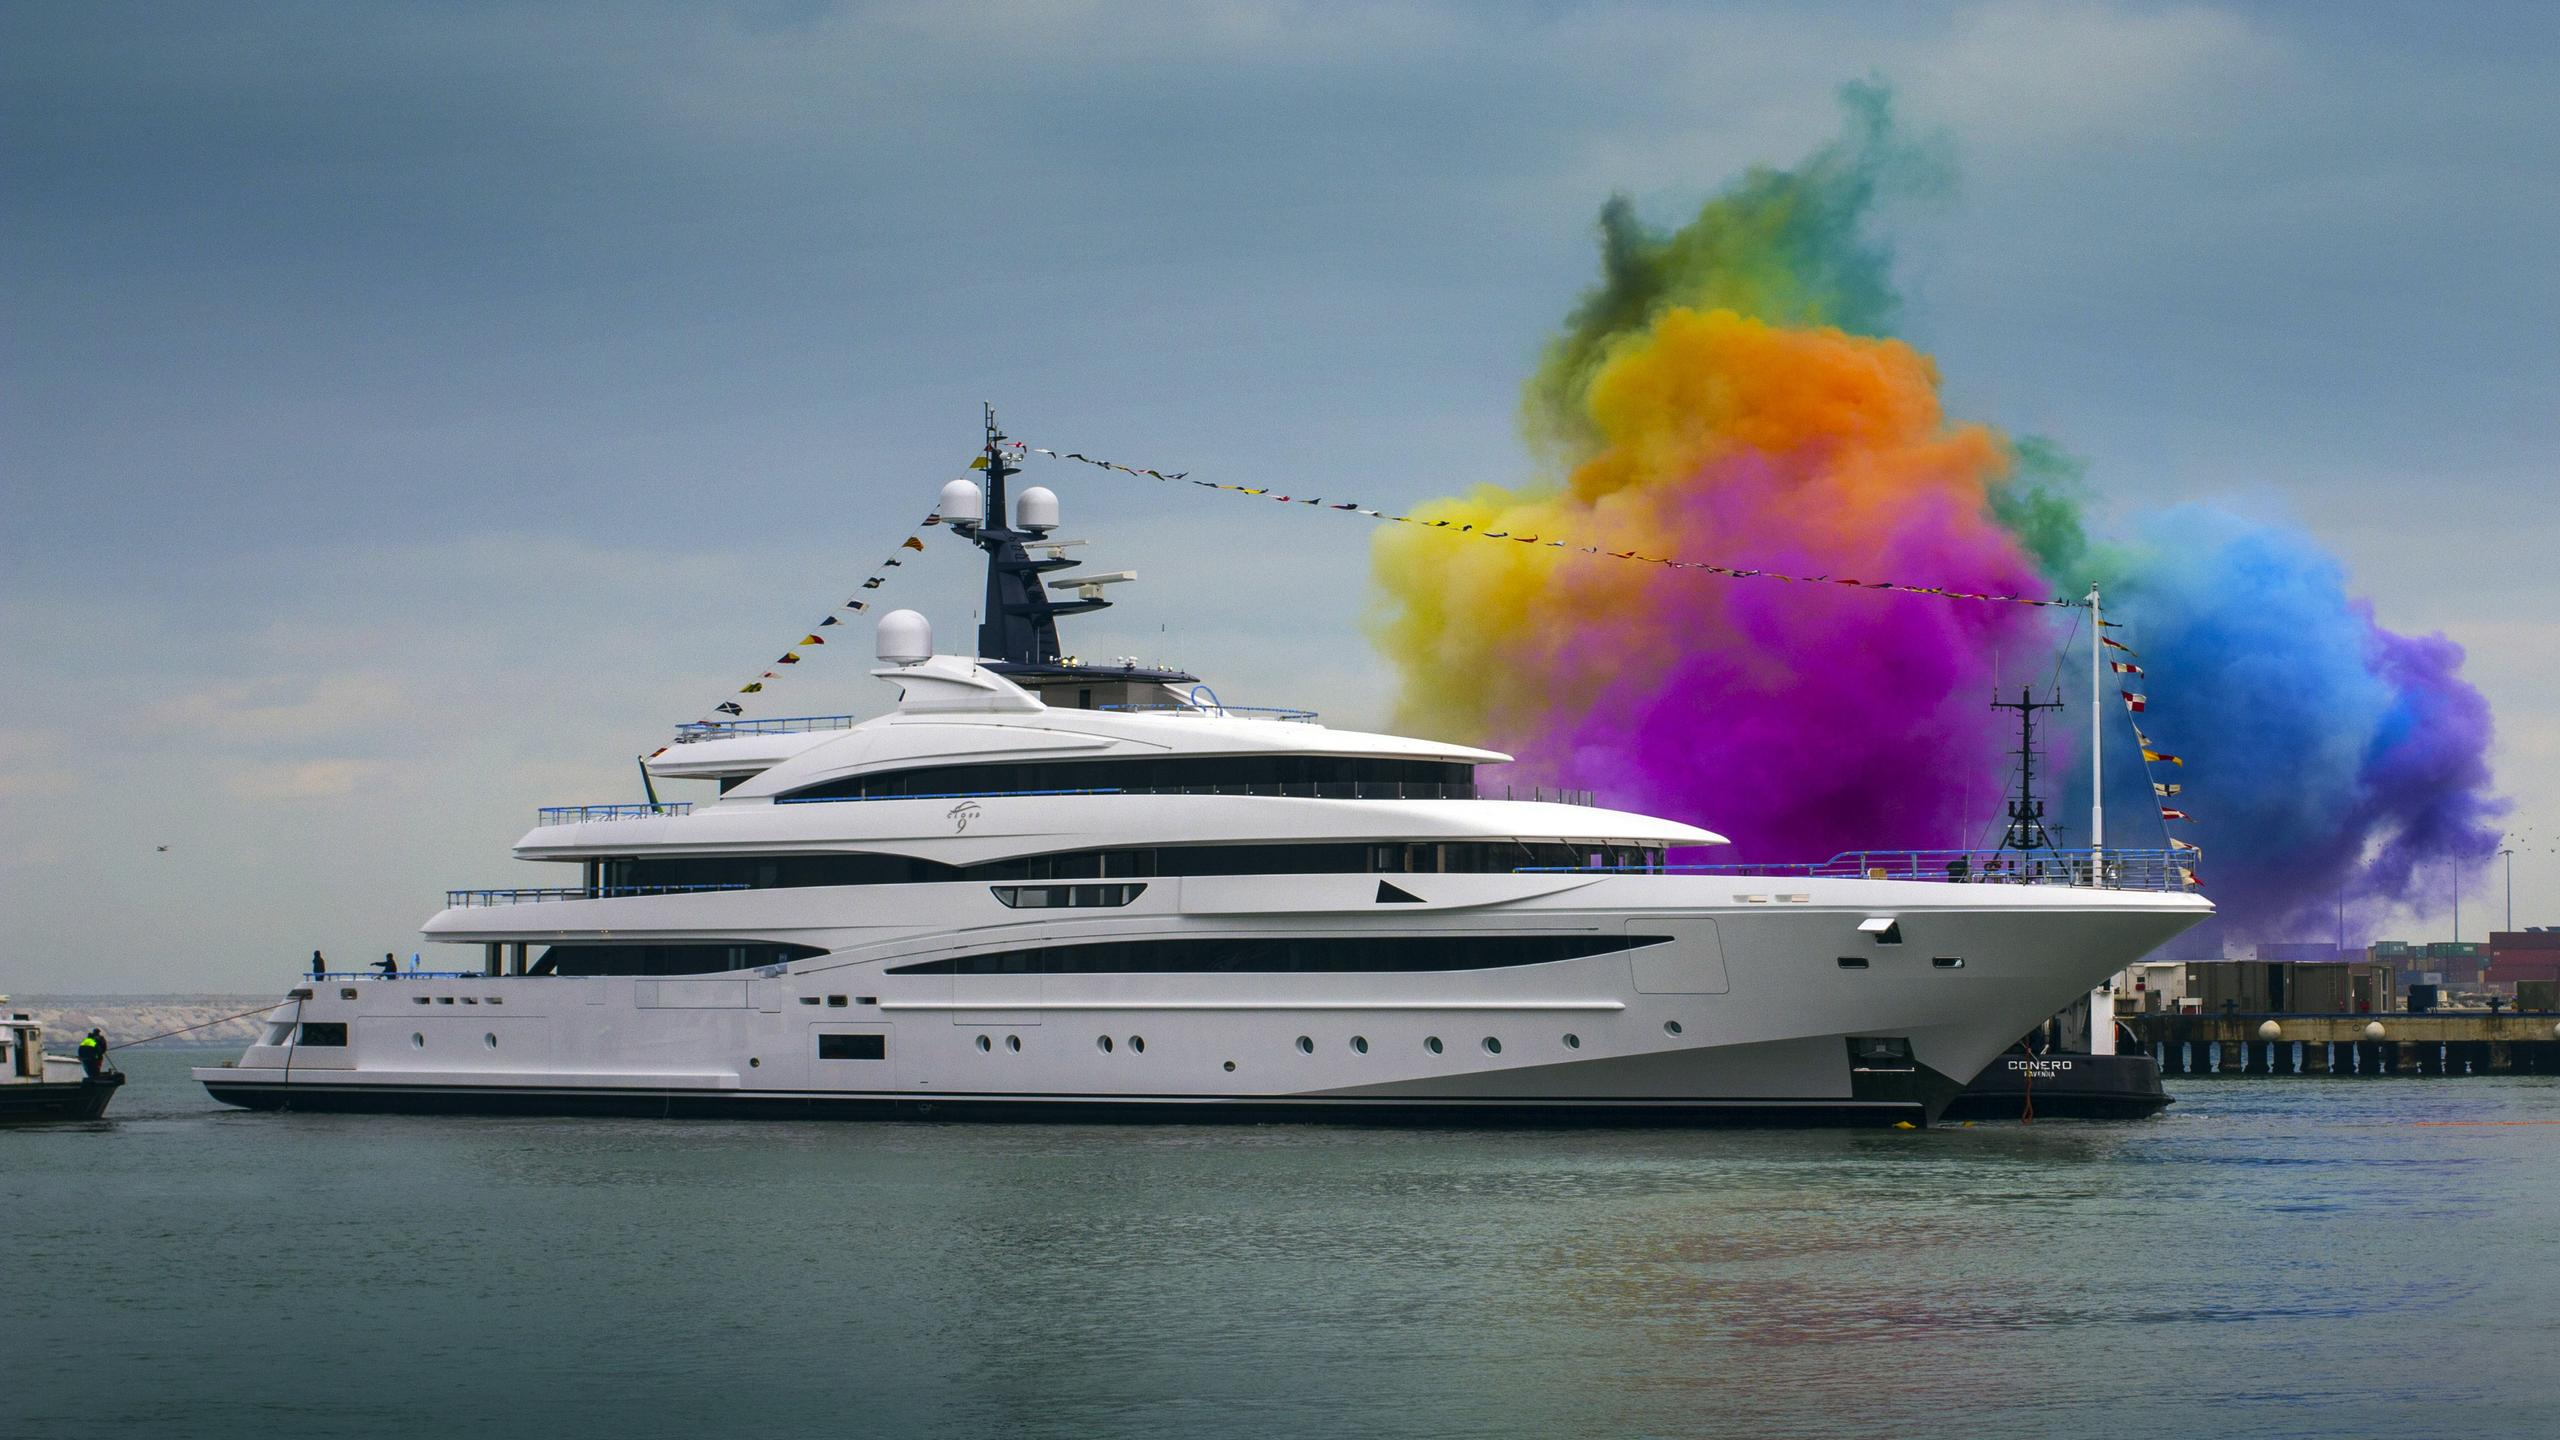 cloud 9 superyacht crn hull 131 2017 74m launch ceremony